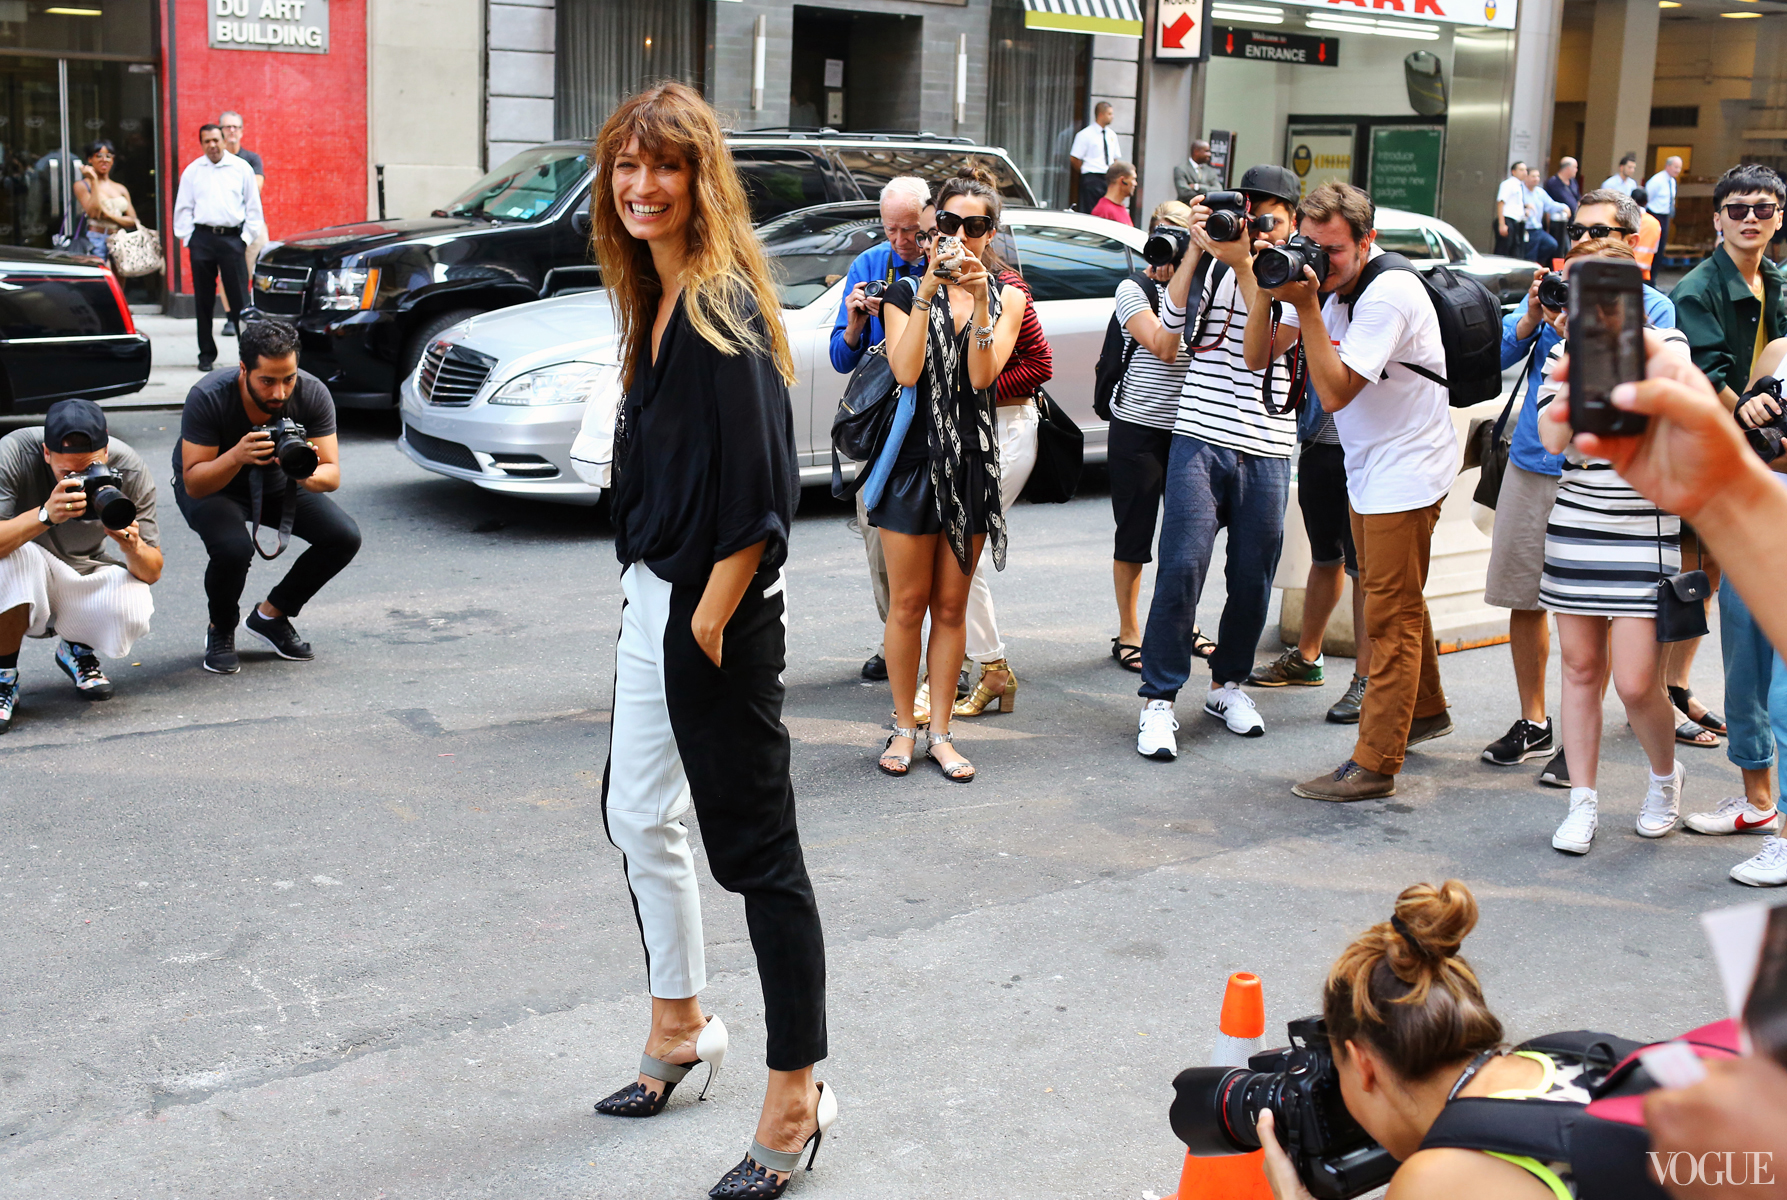 vogue-street-fashion-photography-with-street-style-new-york-fashion-week-spring-2014-part-two-photos